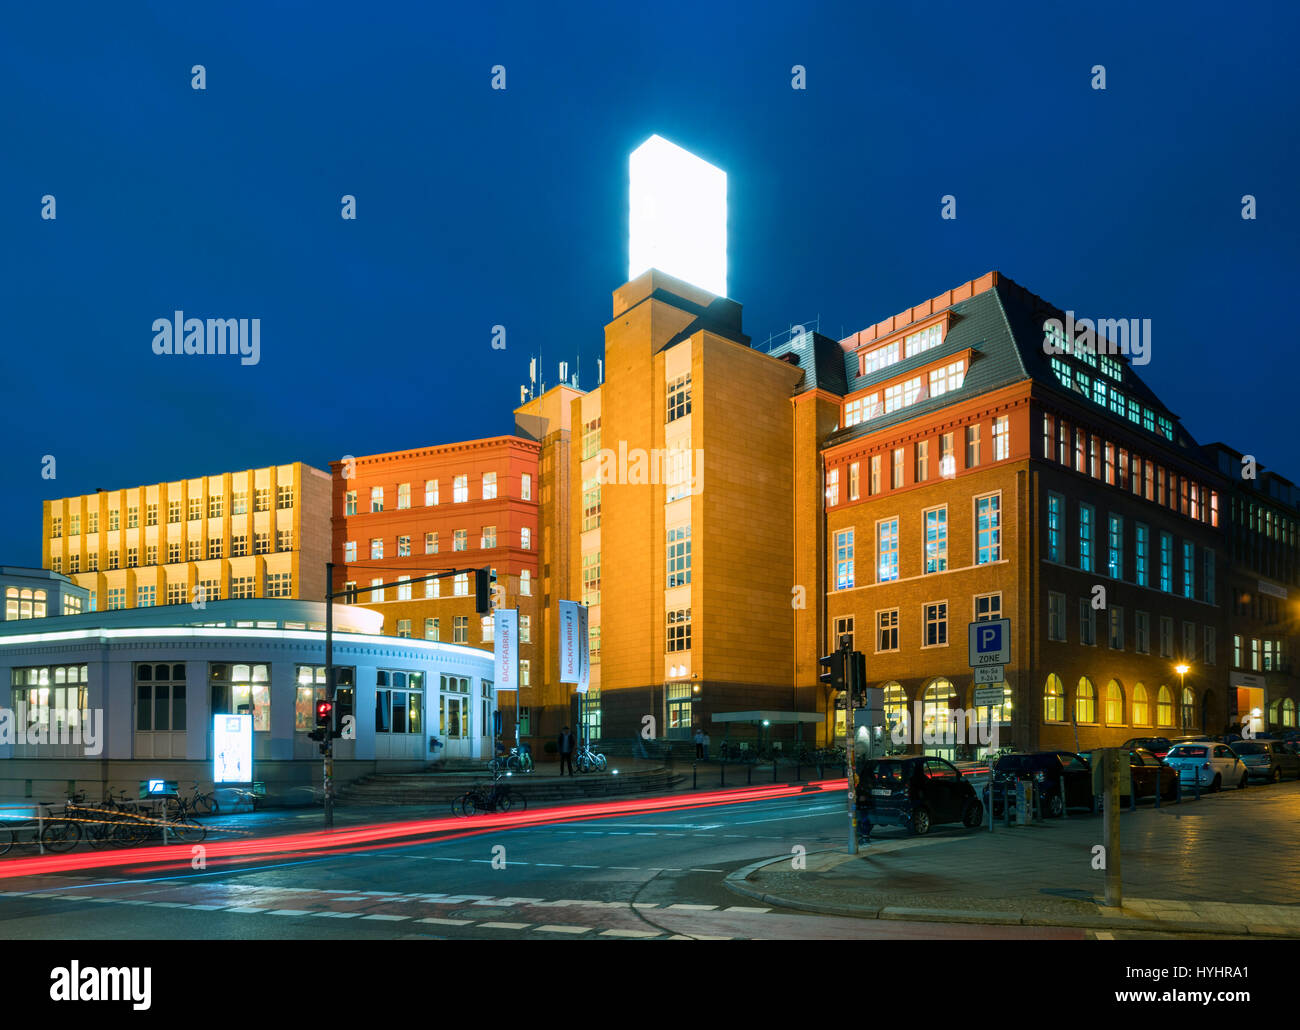 Night view of Backfabrik commercial building containing many start-up companies in Mitte Berlin, Germany Stock Photo